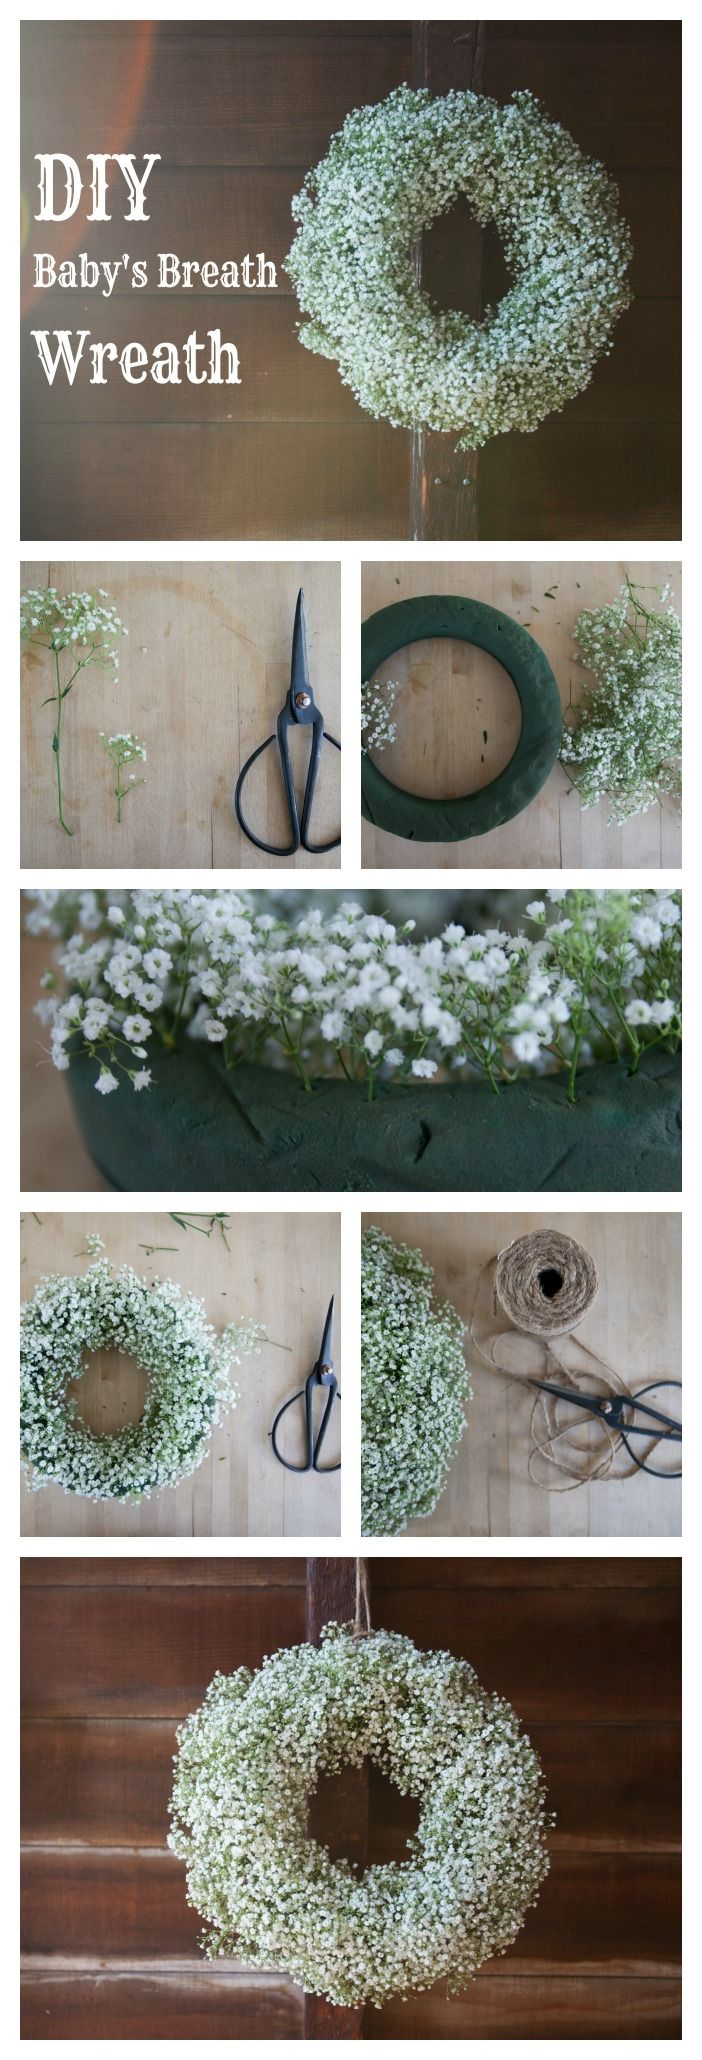 DIY Baby Breath's Wreath